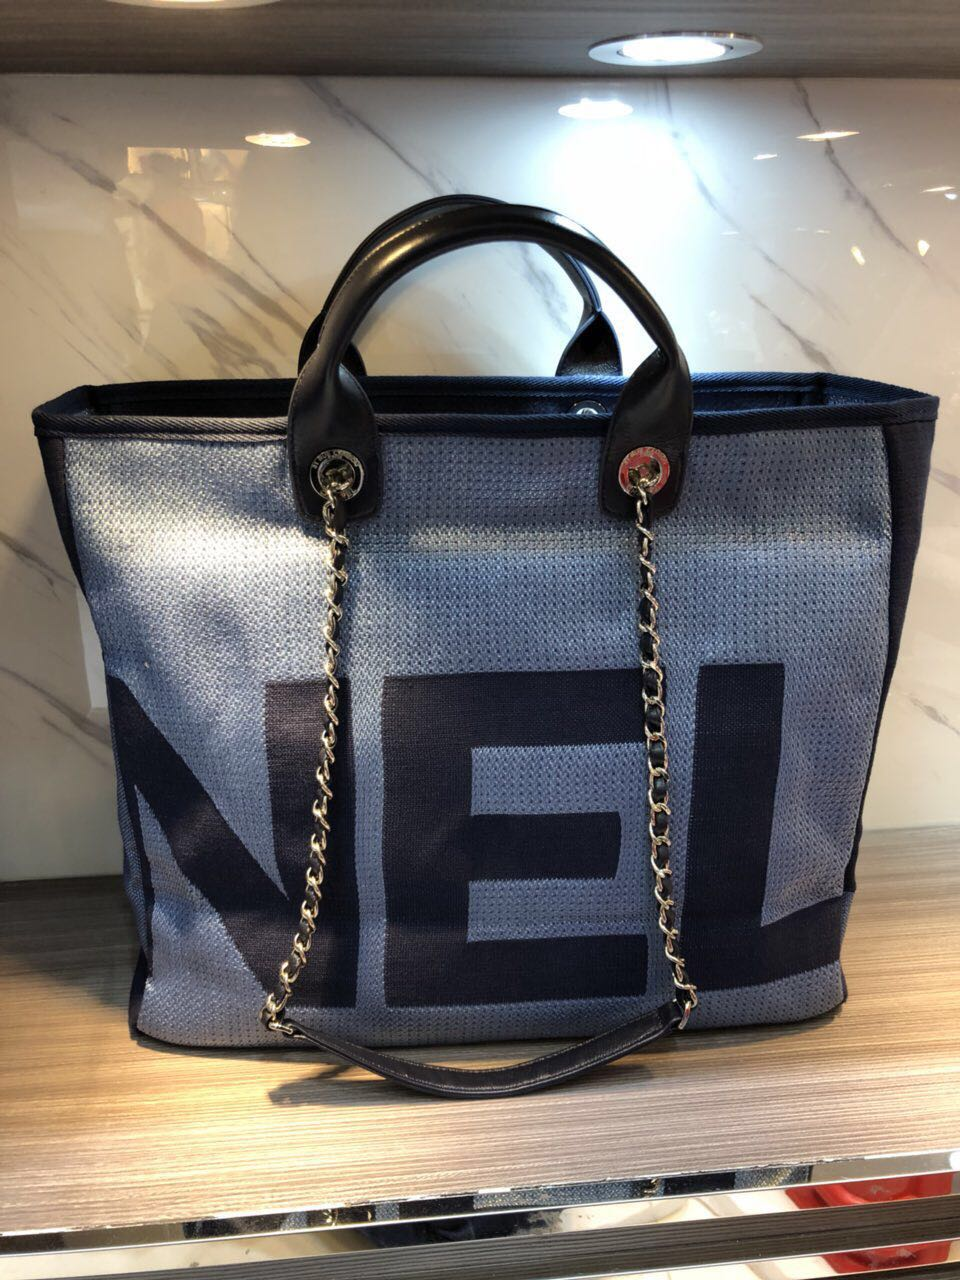 575a7b76a97f1c Chanel Medium Canvas Tote Shopping Bag 55699 blue - $329.00